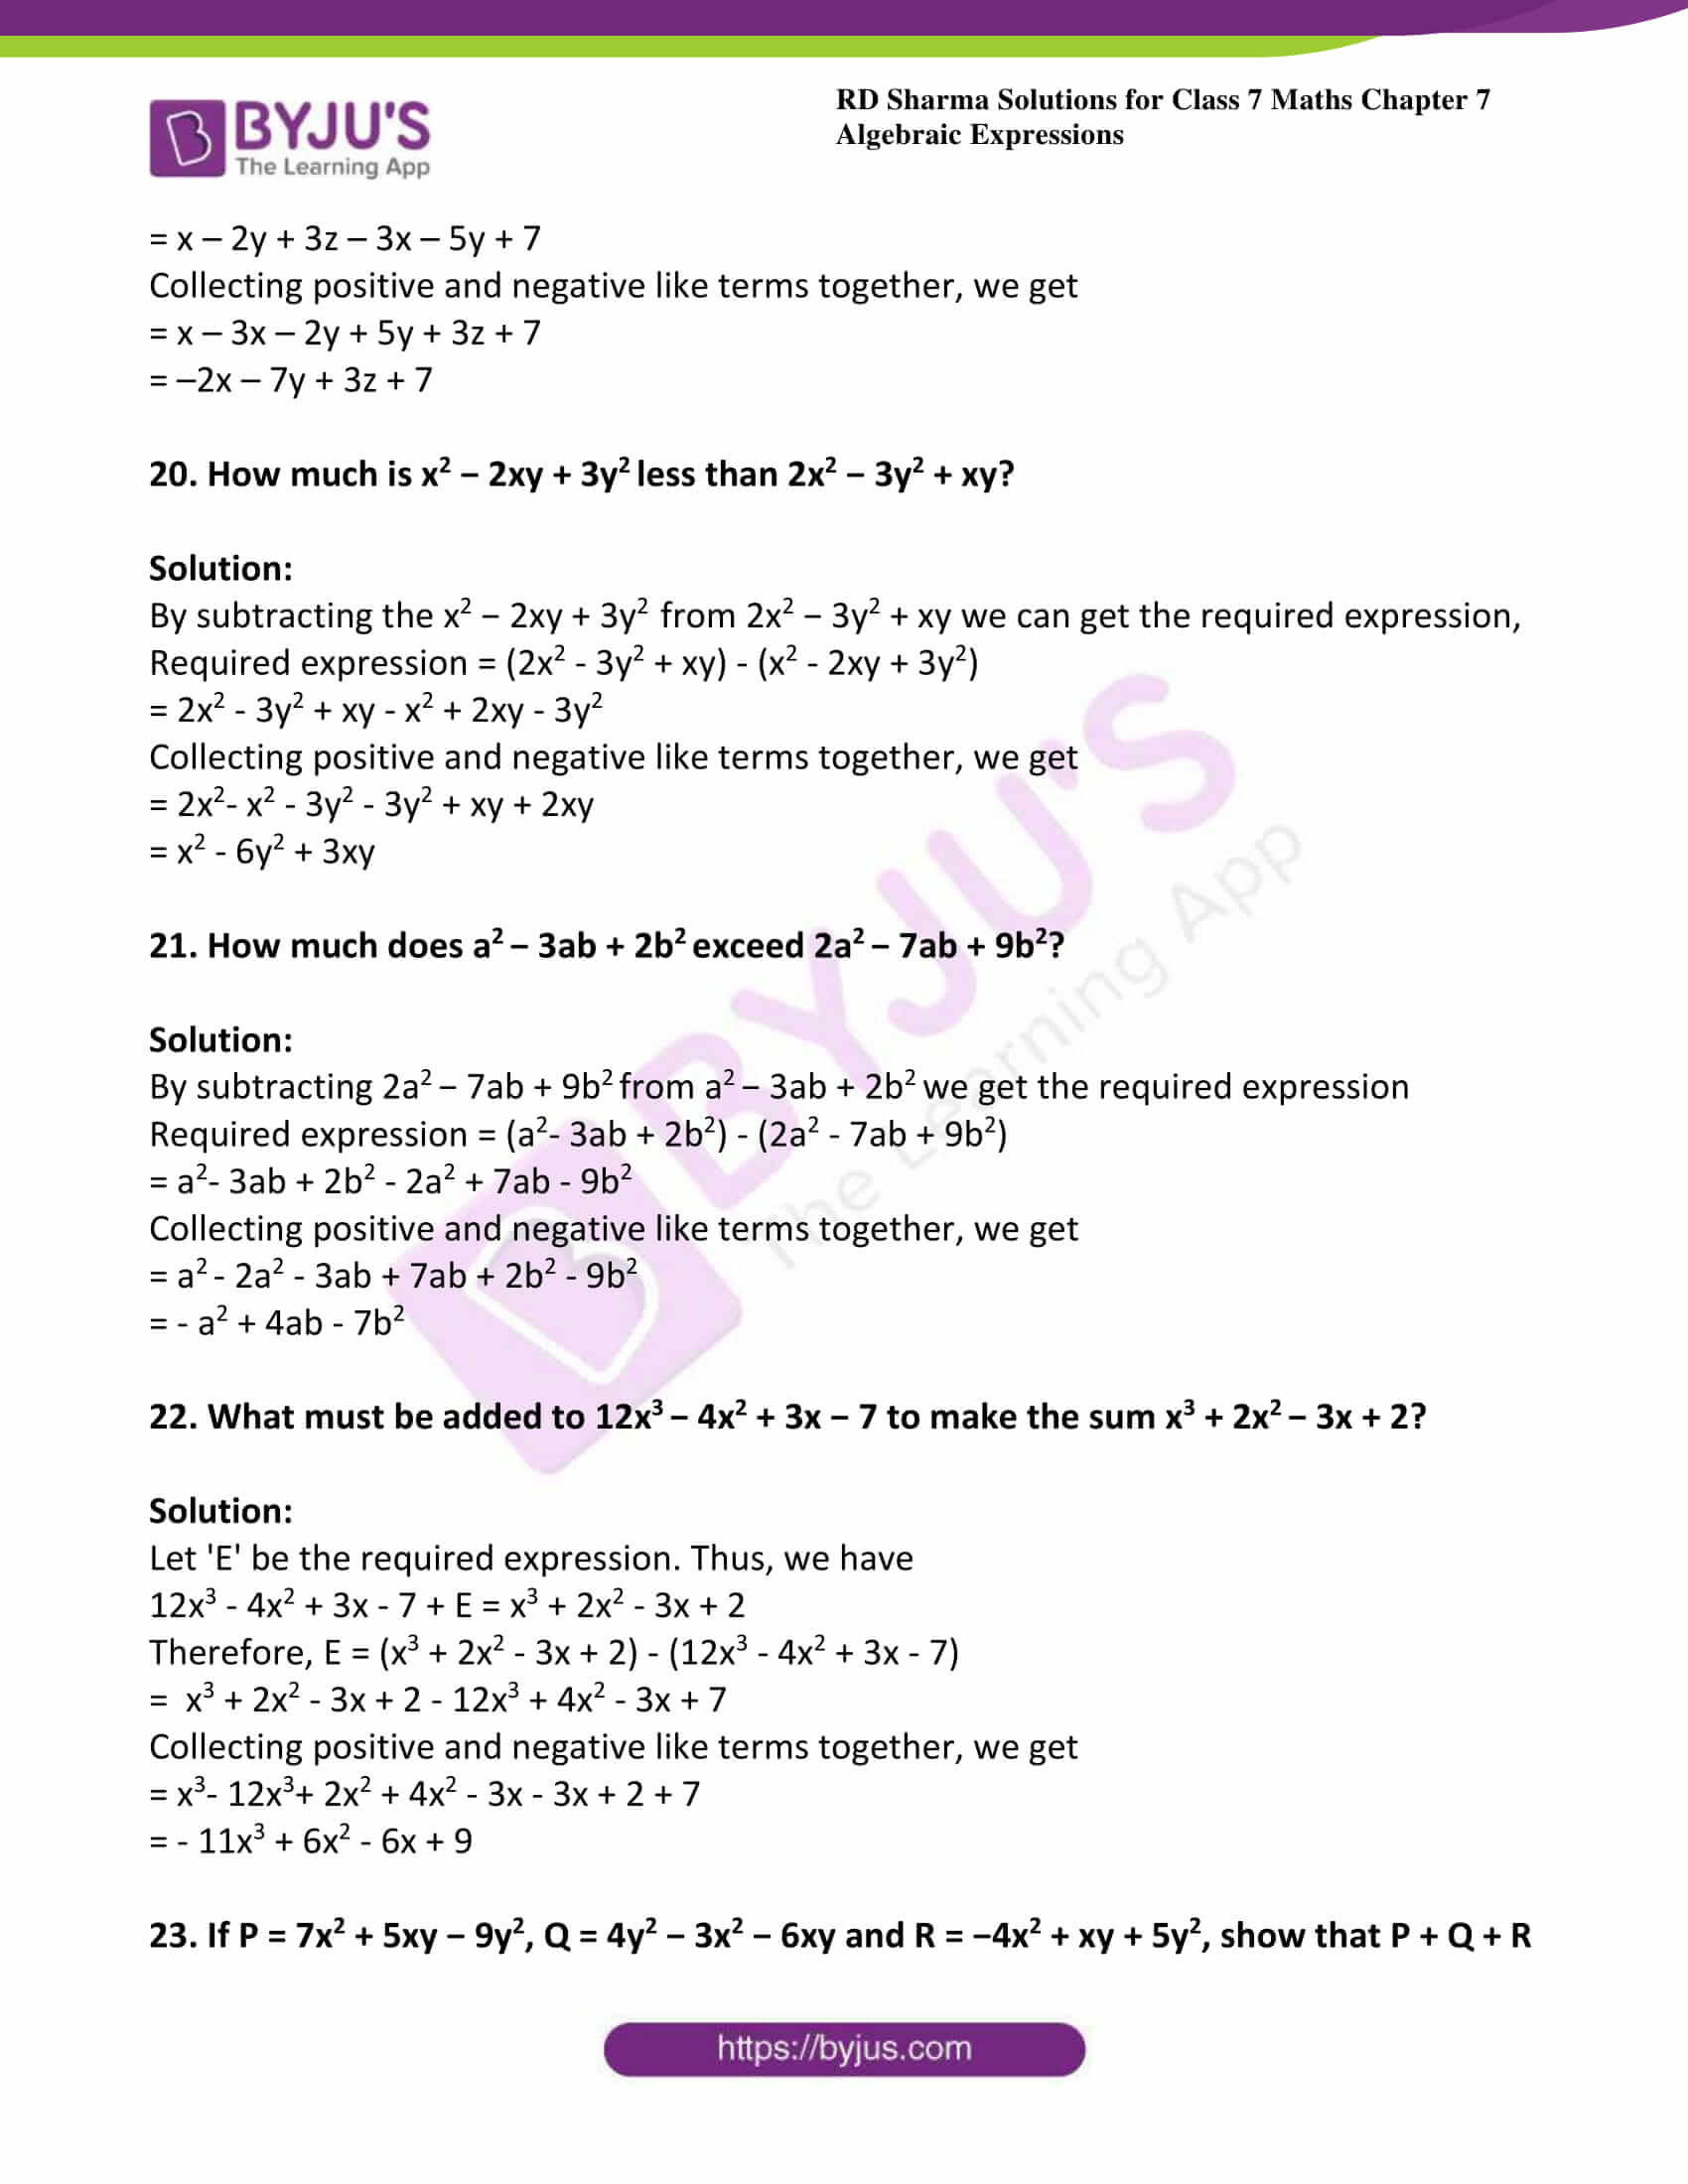 Algebraic Proofs Worksheet with Answers Rd Sharma solutions for Class 7 Maths Chapter 7 Algebraic